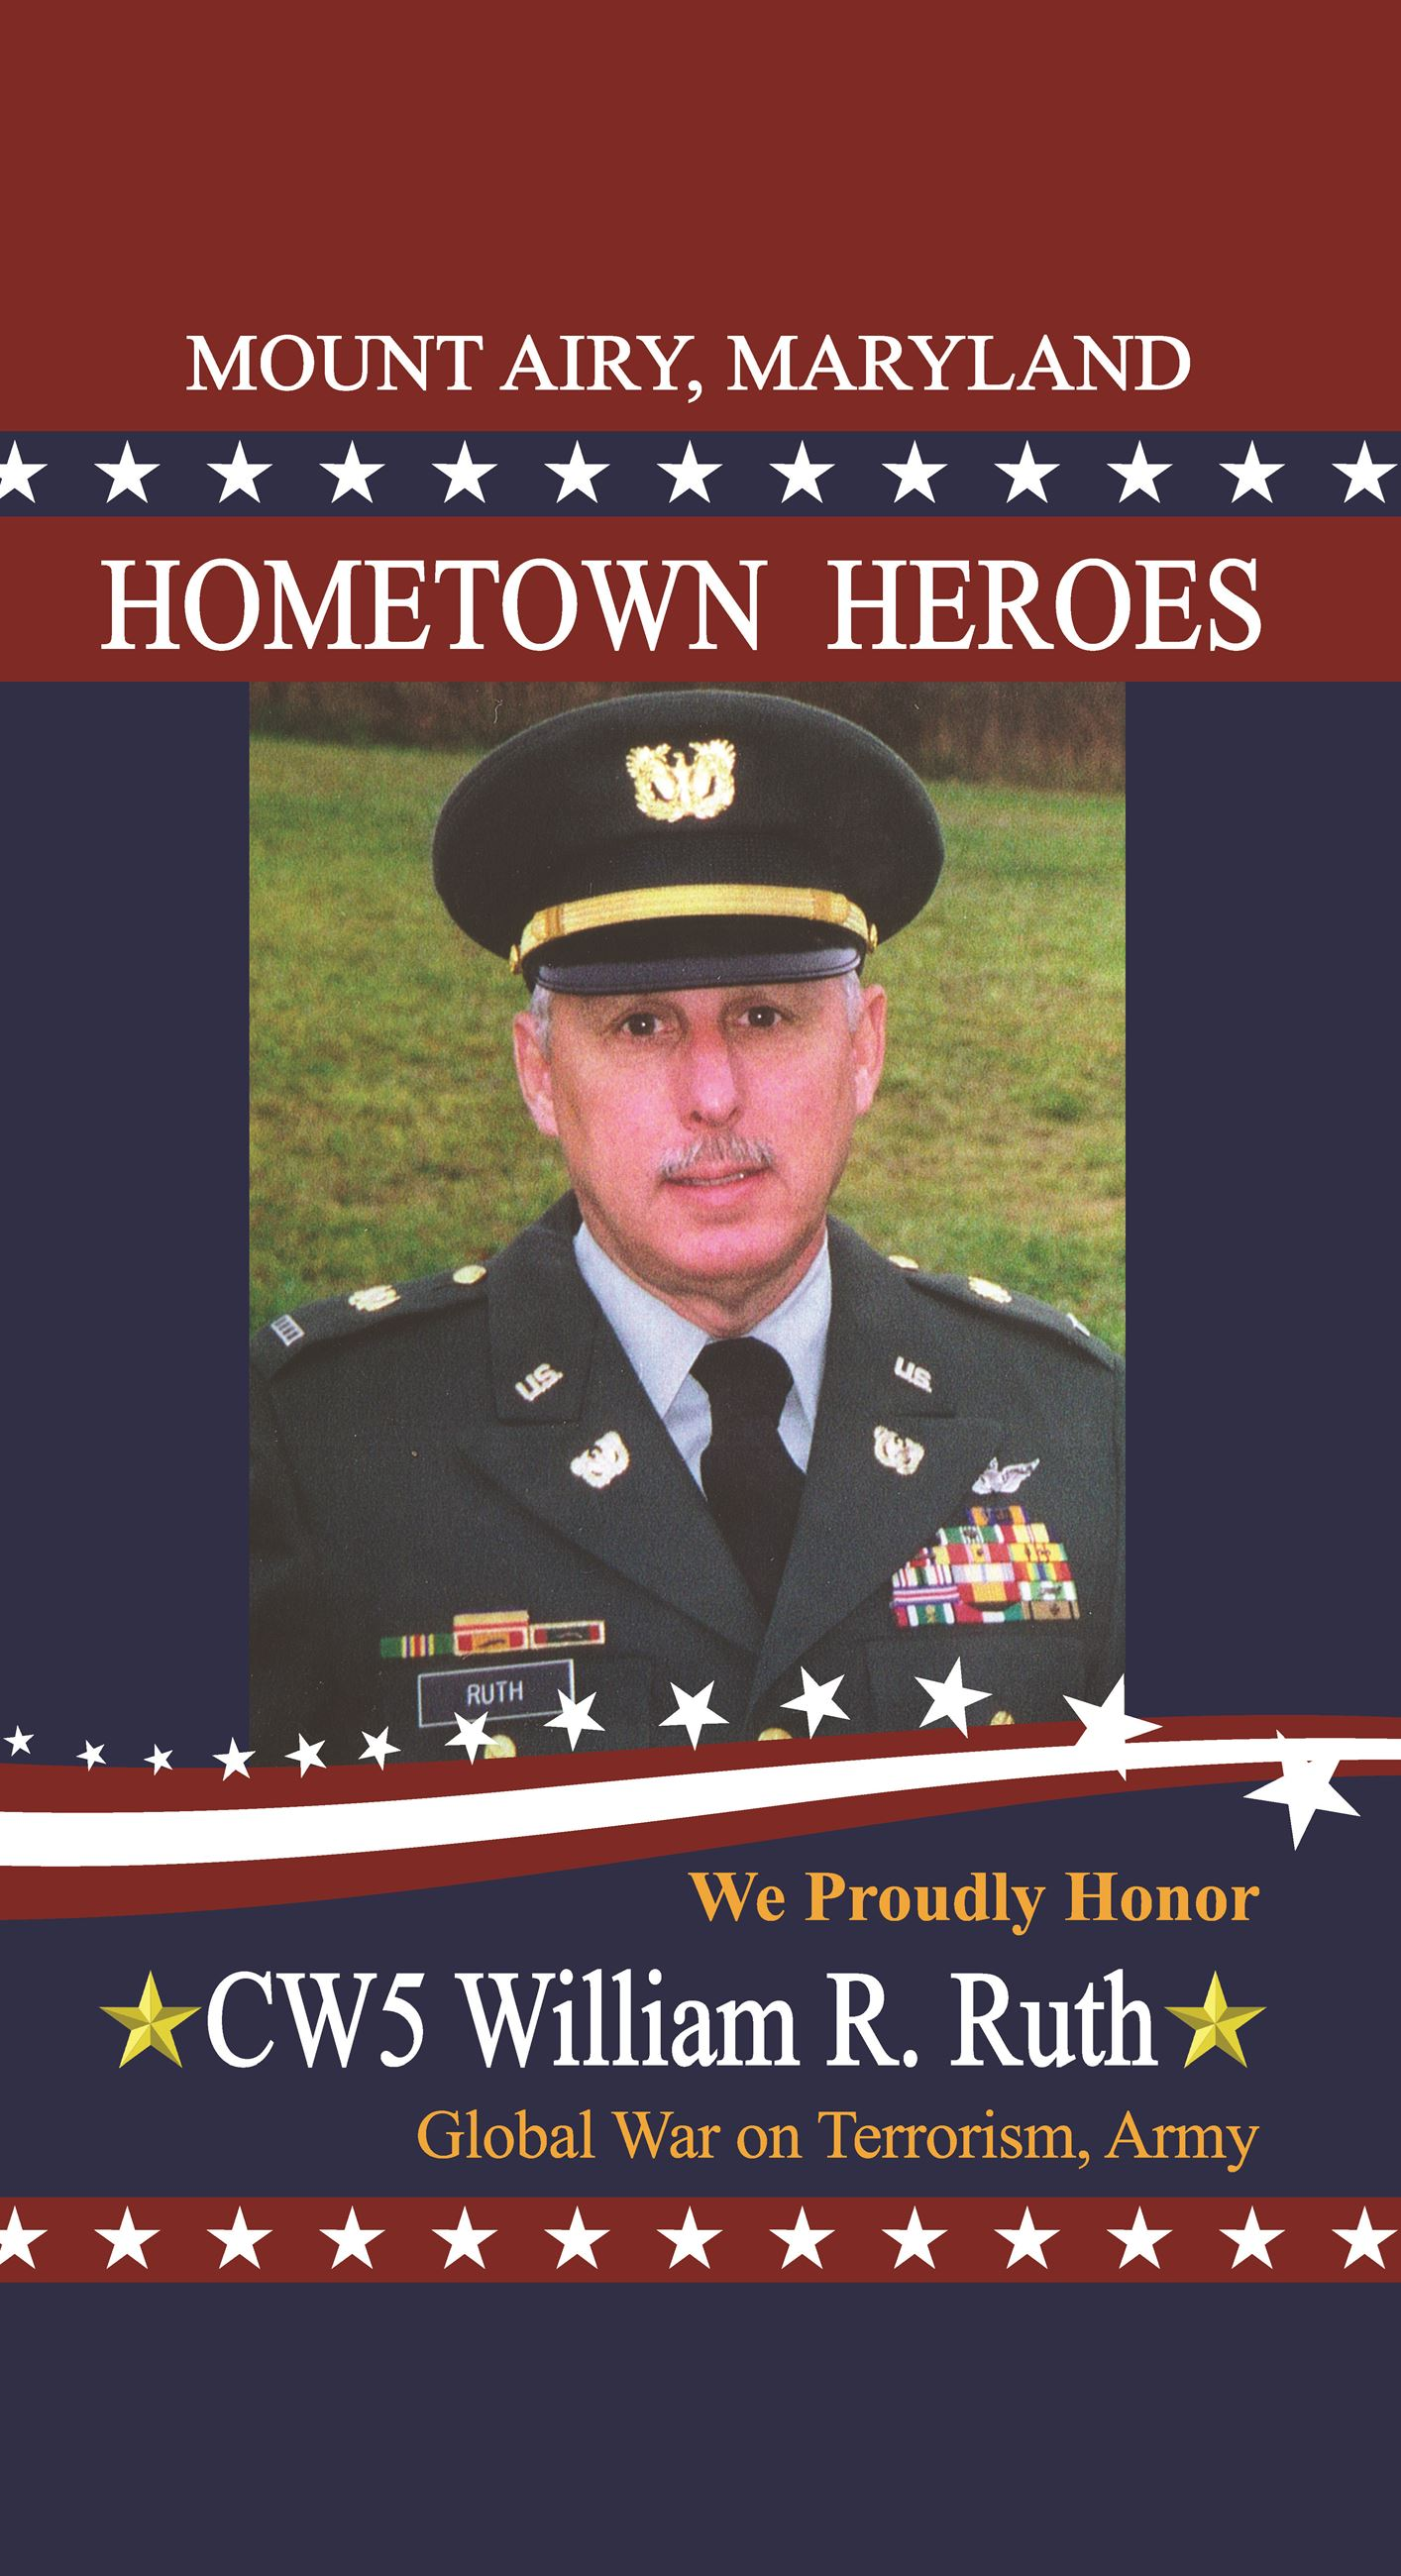 WilliamRRuth_MtAiryHeroes-Flag-24x44-Proof002